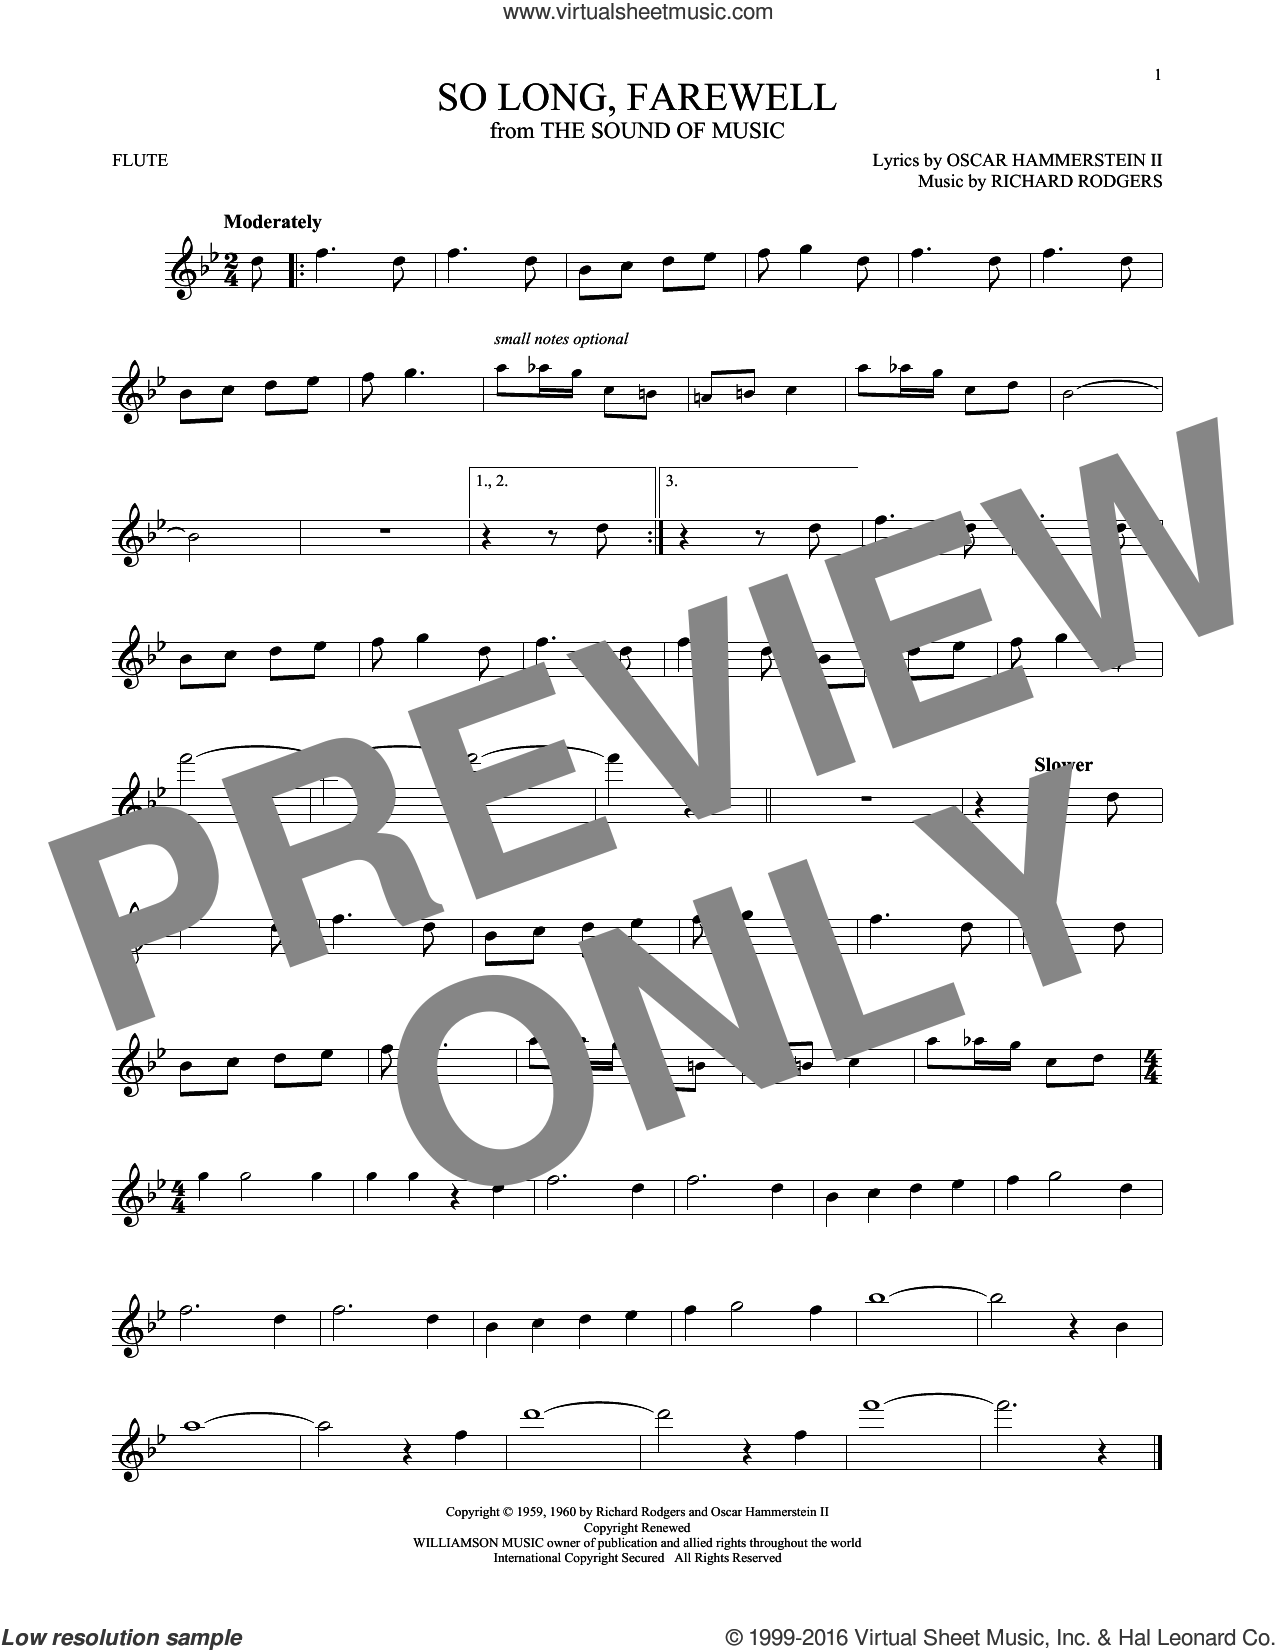 So Long, Farewell sheet music for flute solo by Rodgers & Hammerstein, Oscar II Hammerstein and Richard Rodgers. Score Image Preview.